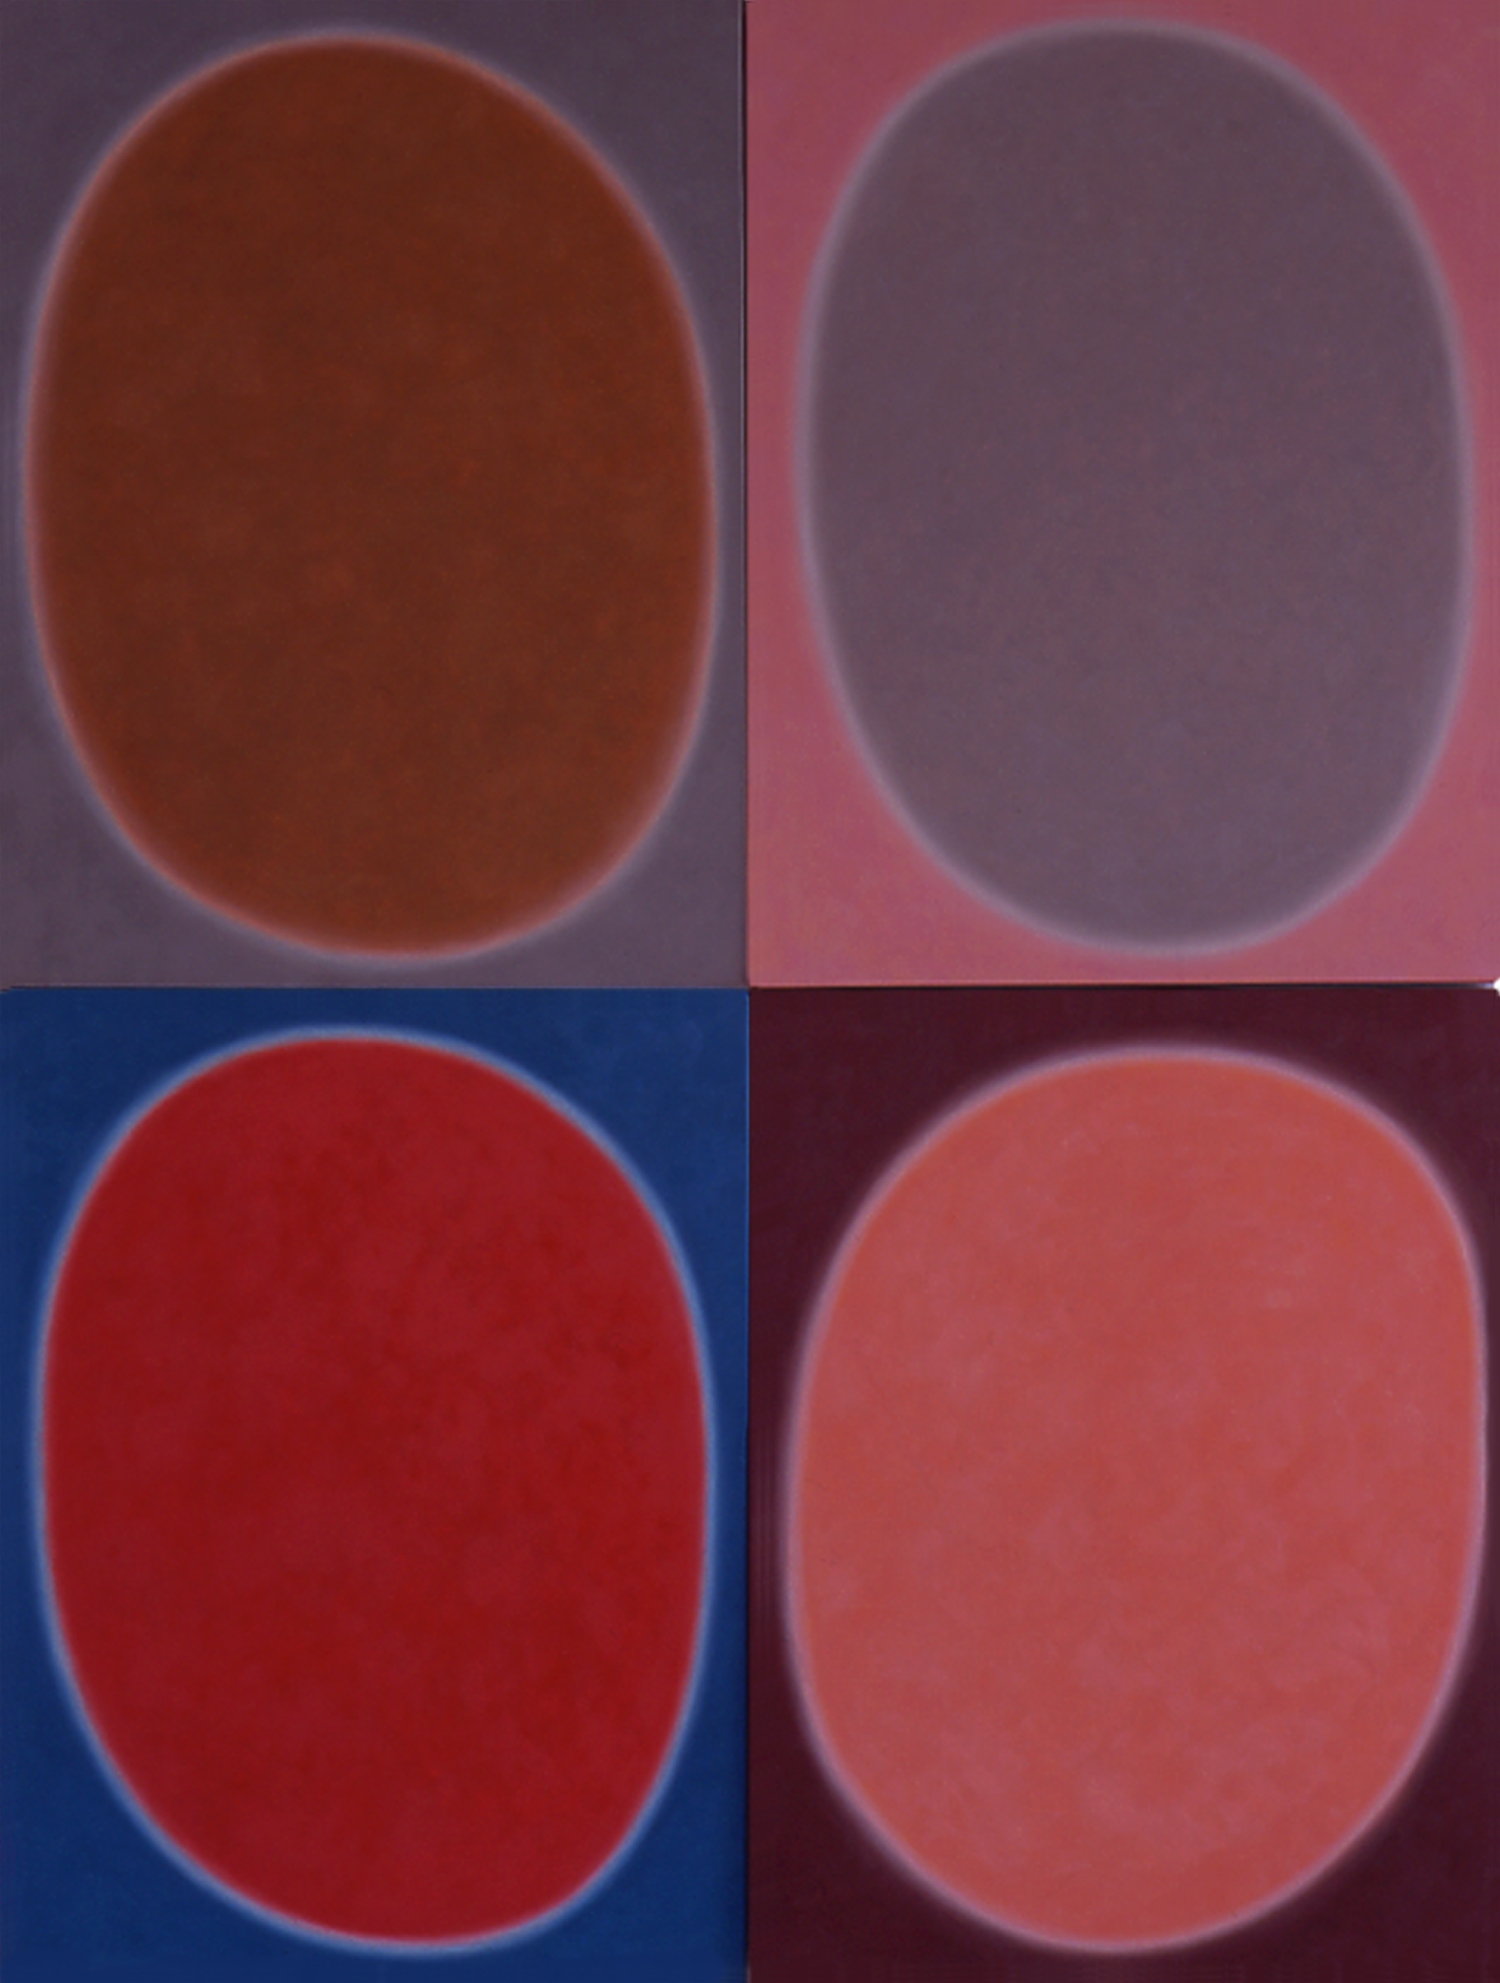 """Silent 10, oil on canvas, 2001, series of 4 panels W18"""" x H24"""" each, total format W36"""" x H48"""". Private collection."""